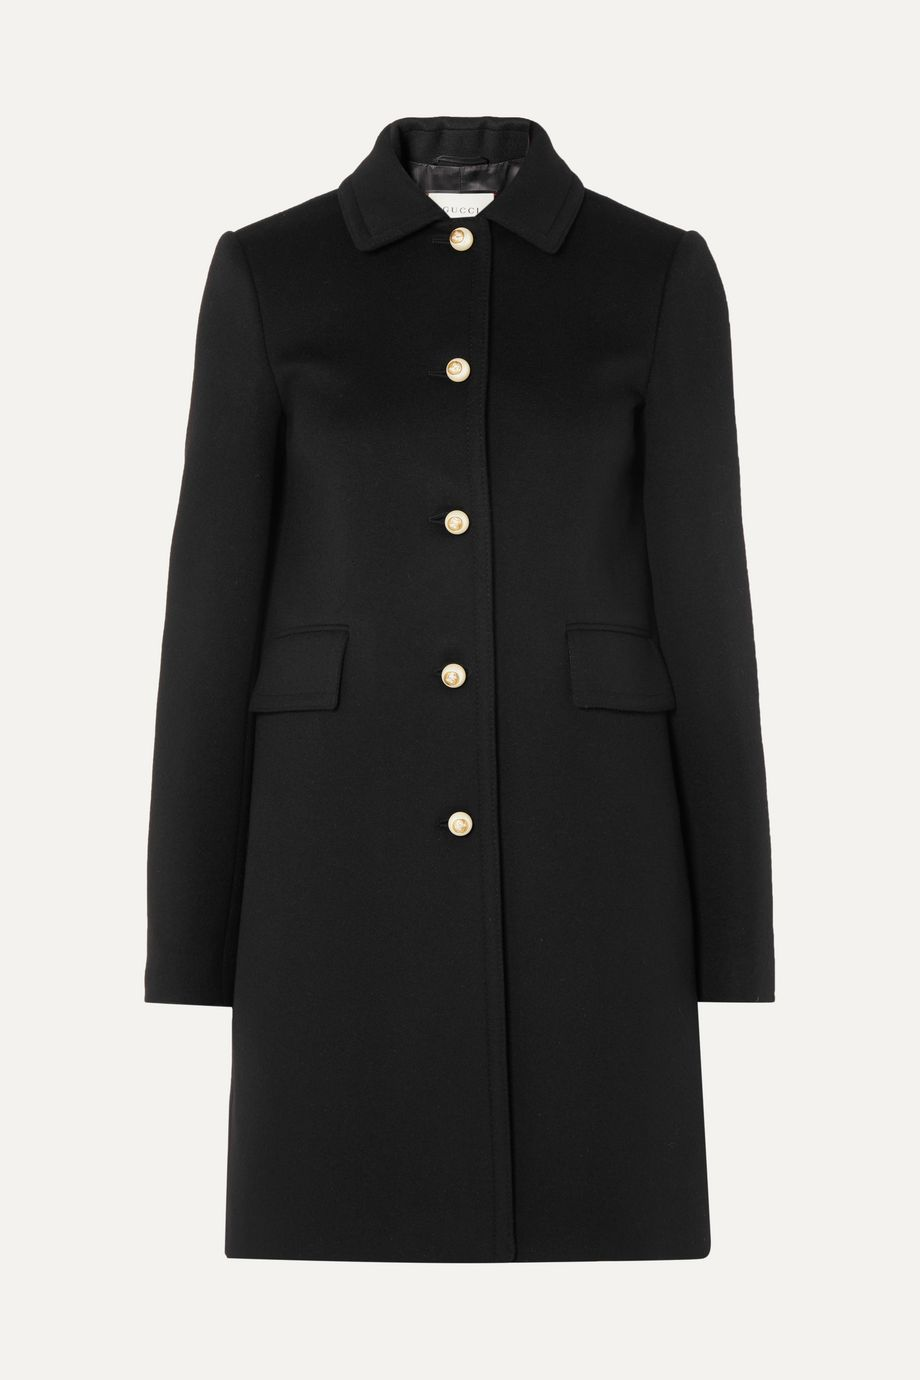 Gucci Faux pearl-embellished wool coat